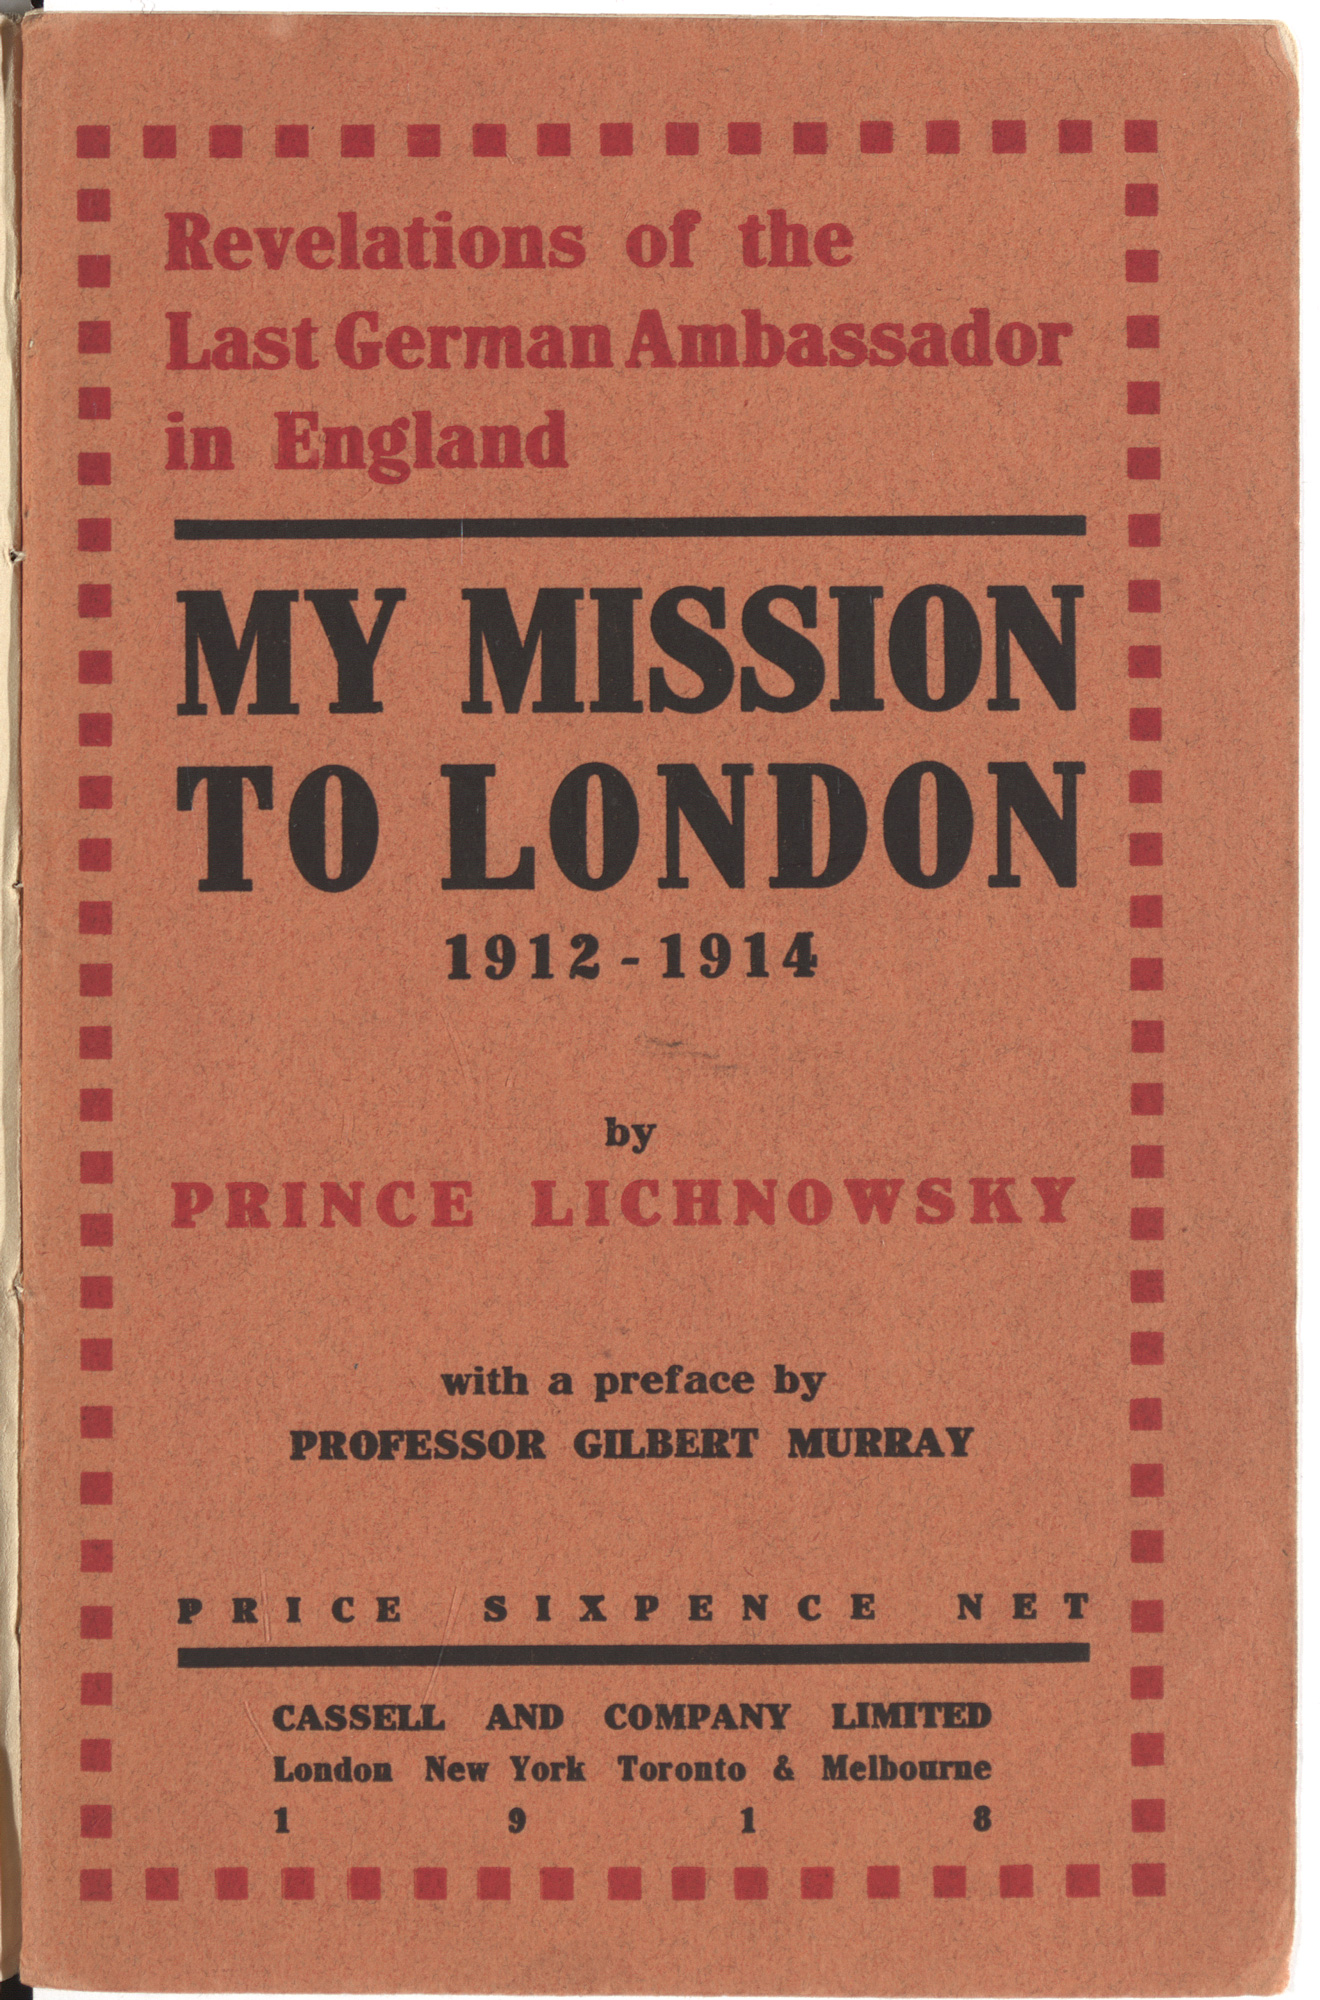 My Mission to London